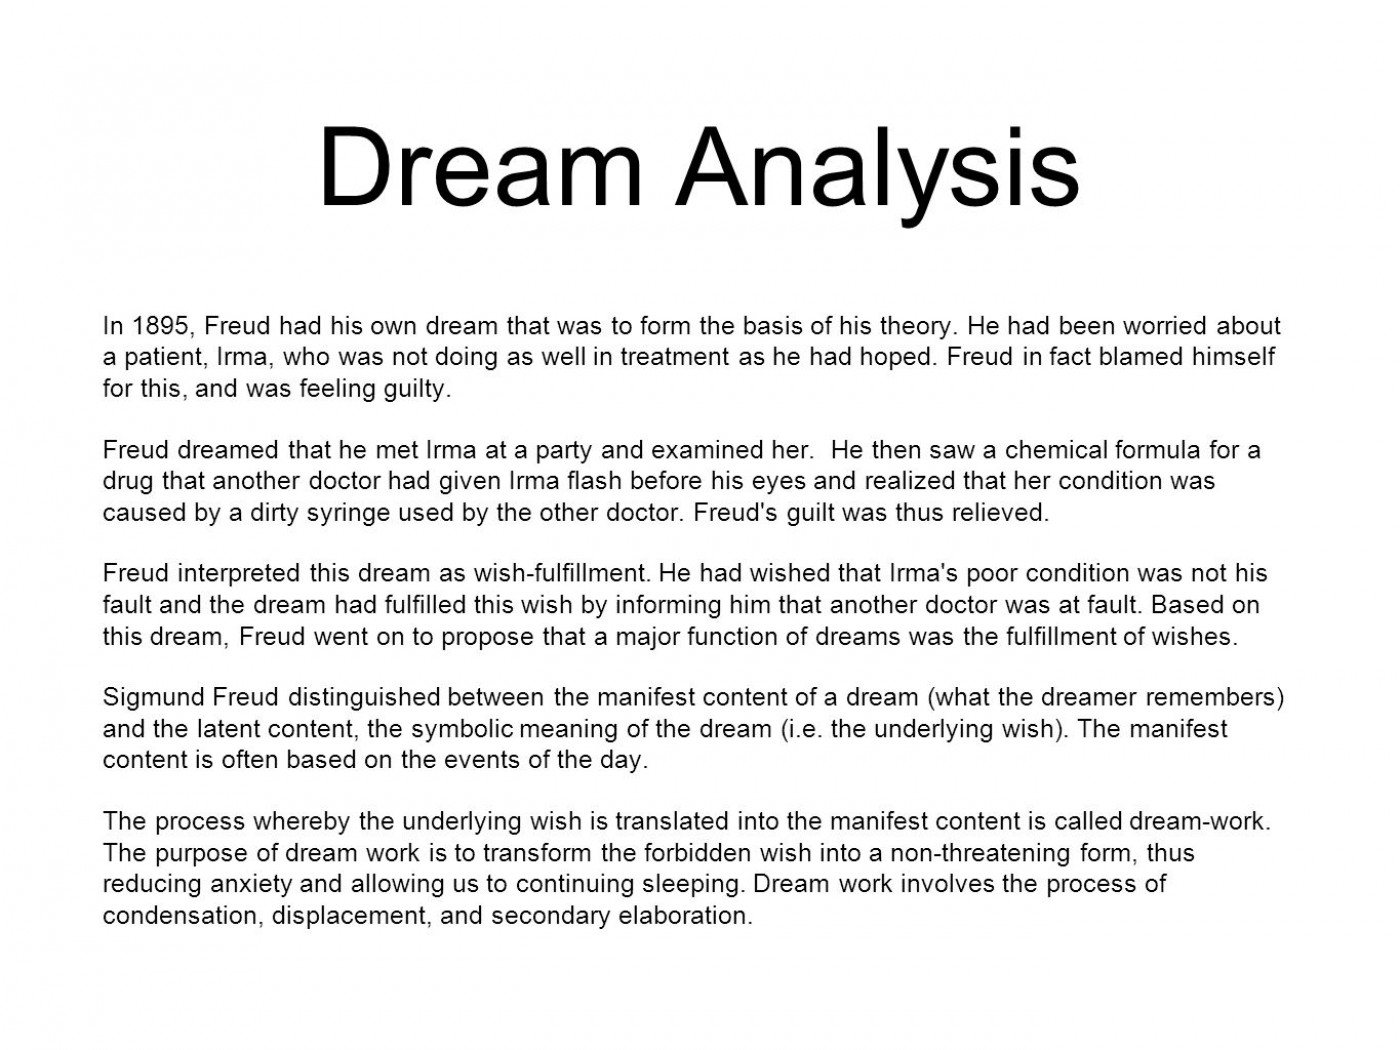 016 Research Paper Dreamanalysis Psychology Topics On Rare Dreams Articles 1400